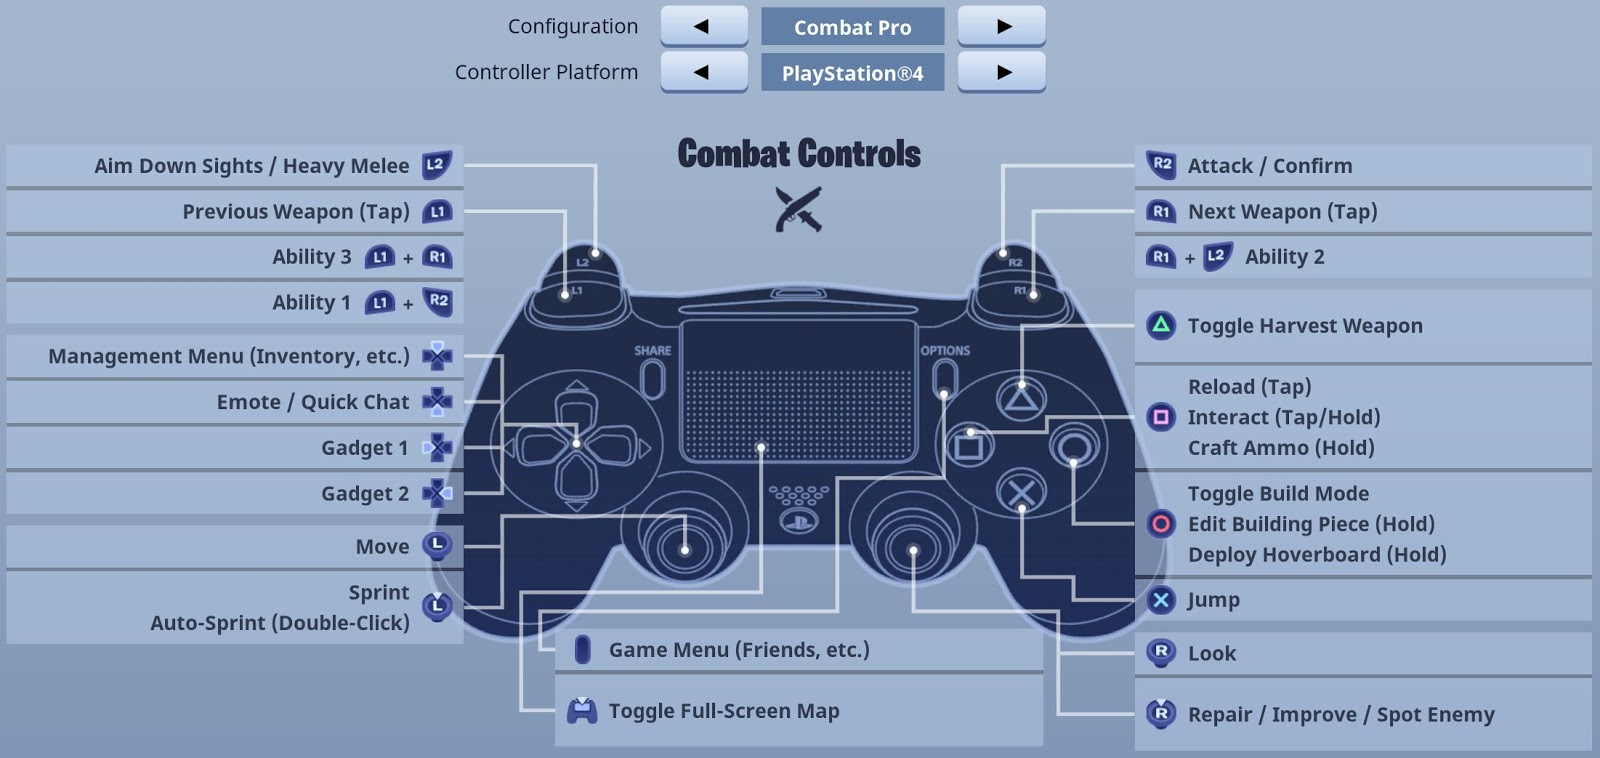 PS4 Combat Pro Combat Controls for Fortnite